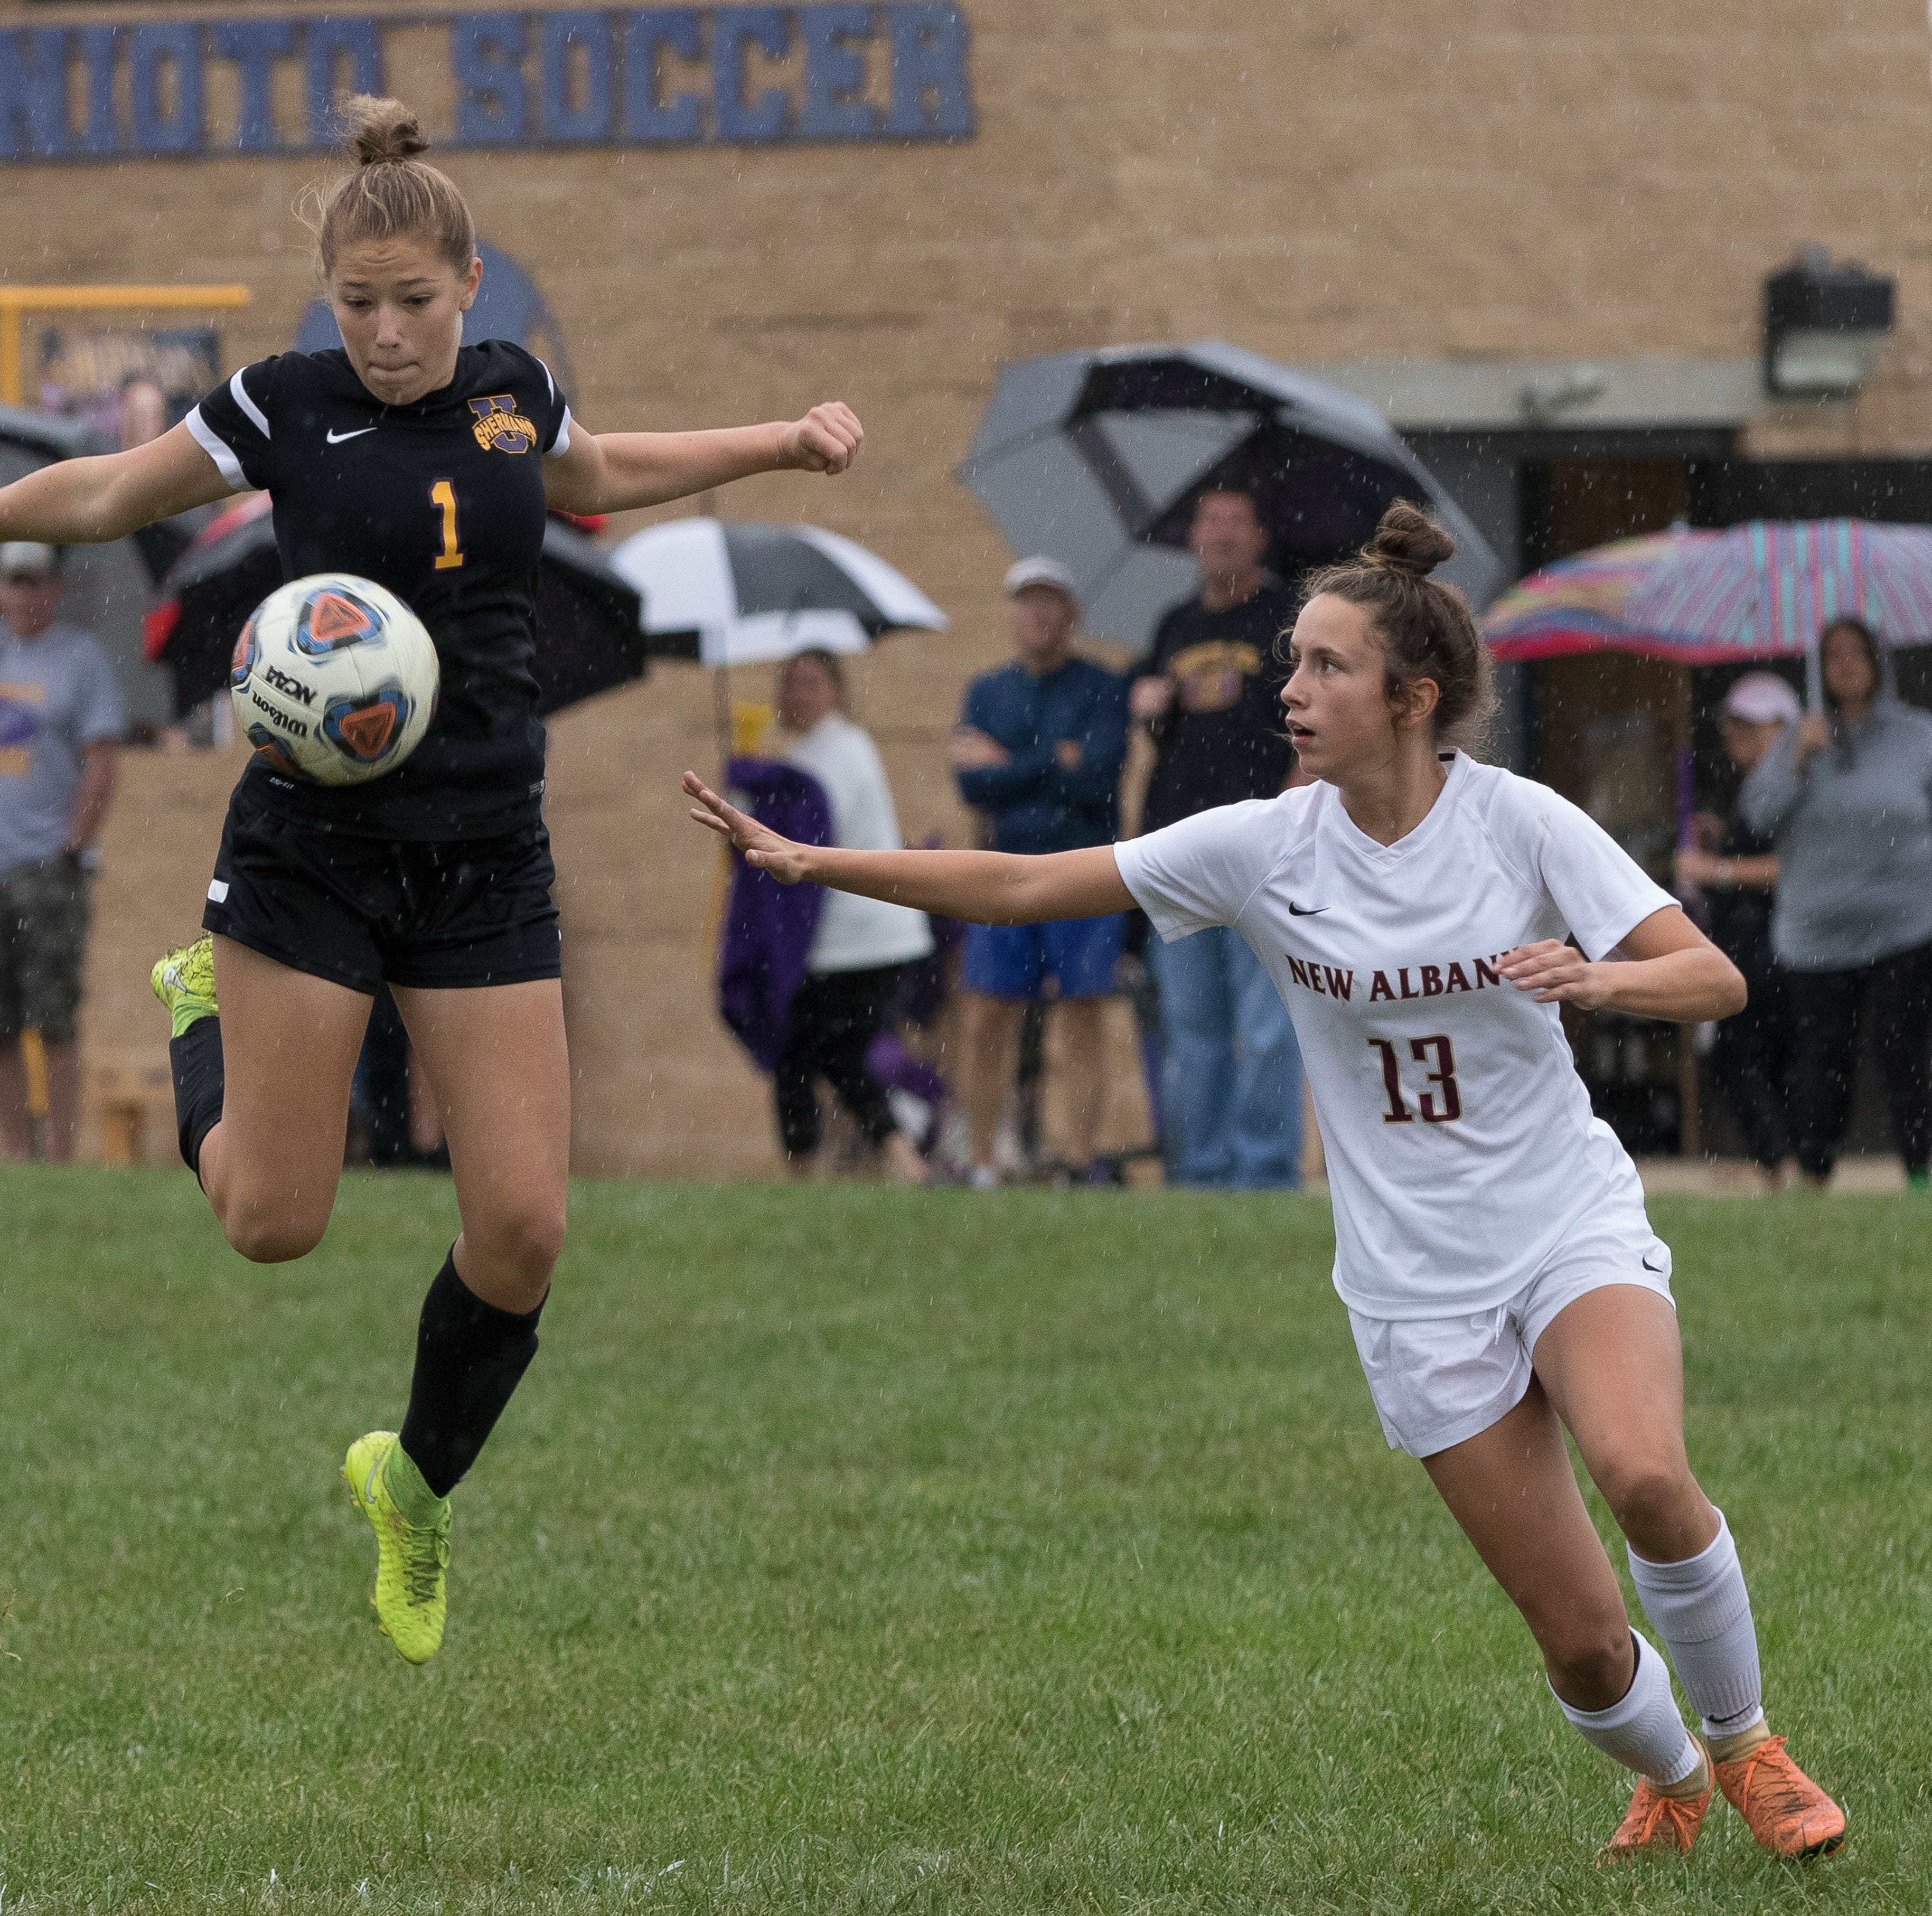 HS GIRLS SOCCER: Unioto loses first match of season, falls to New Albany 5-0